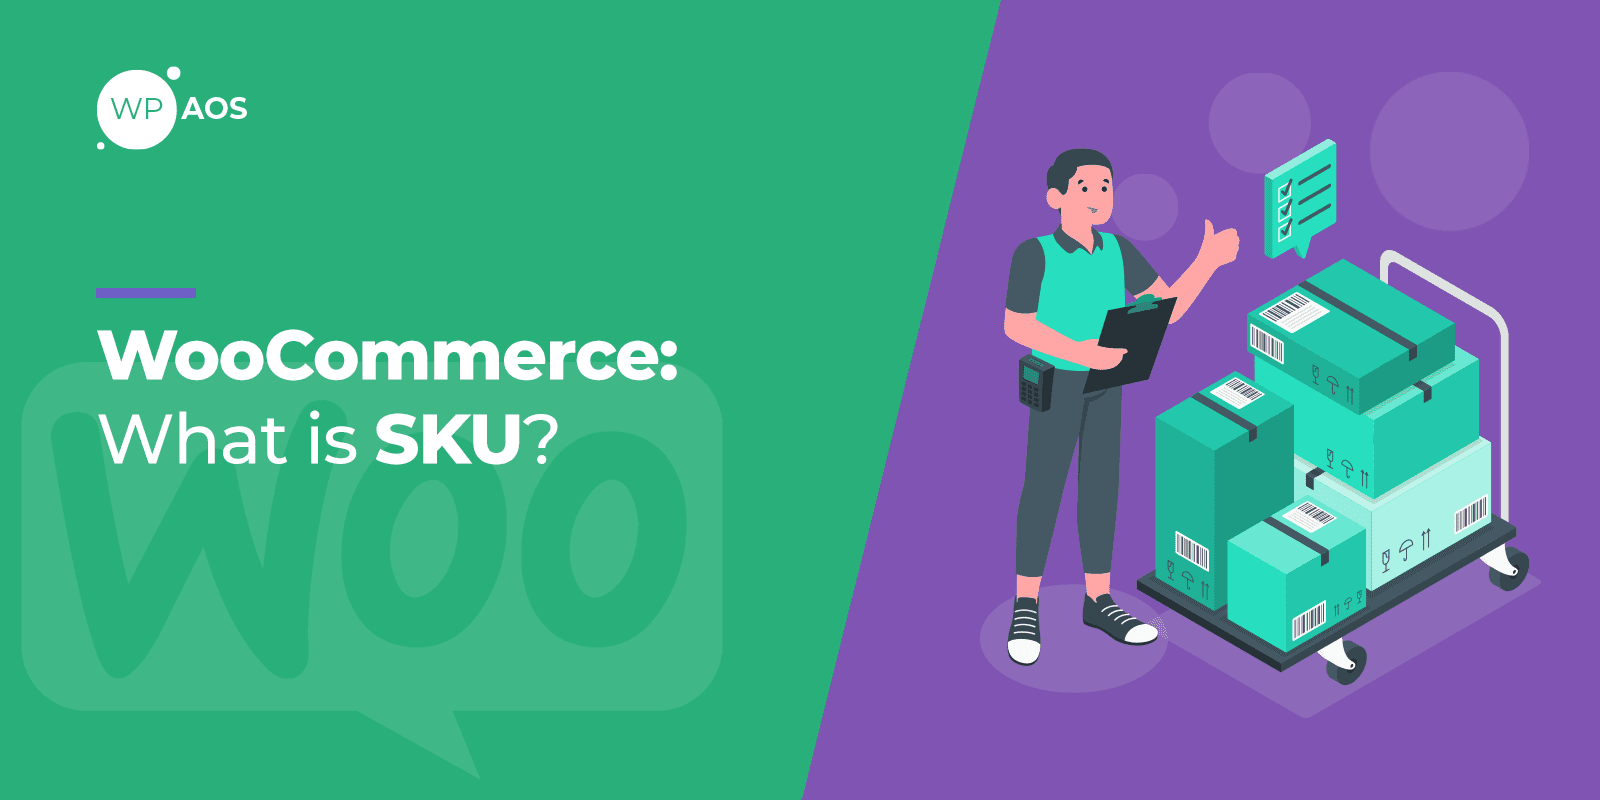 WooCommerce What is SKU, WordPress Maintenance, wpaos